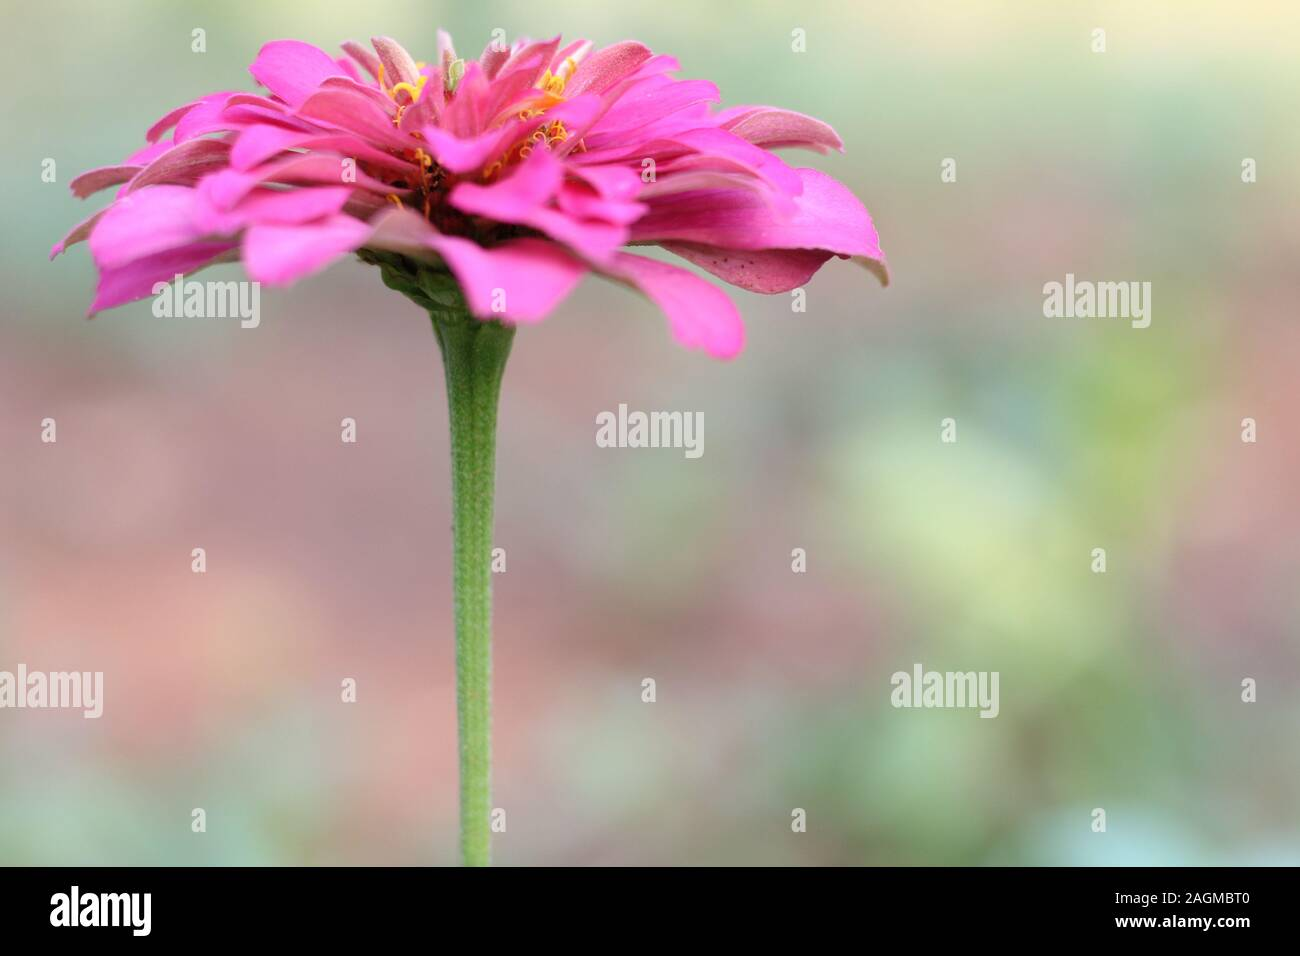 marigold flower pink color close up Stock Photo